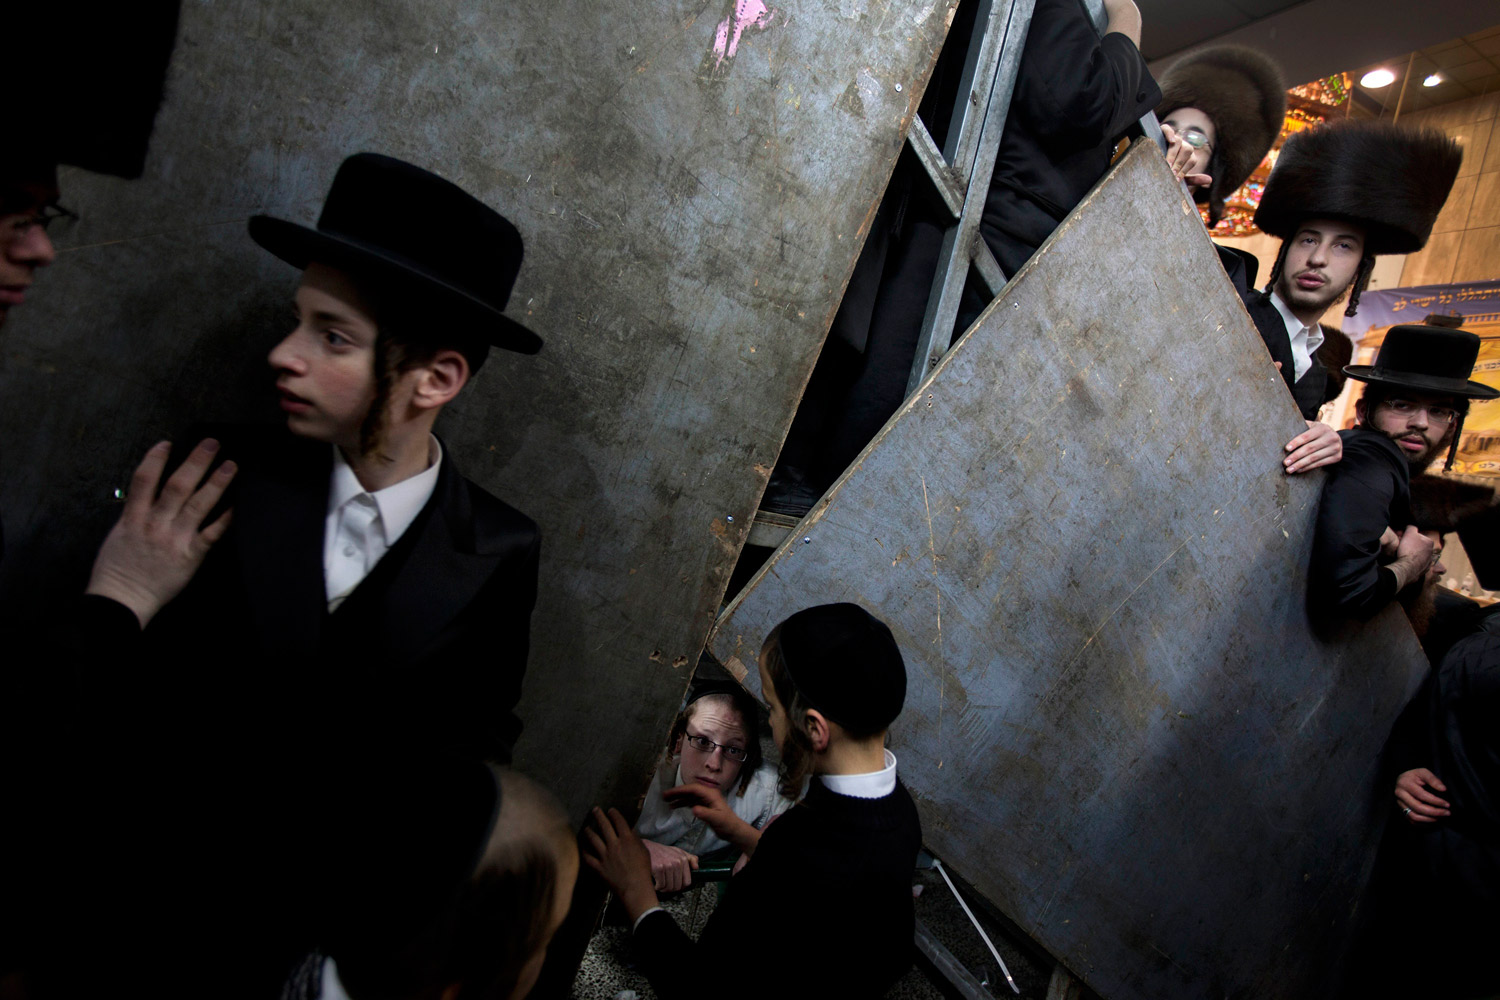 Feb. 16, 2012. Ultra-Orthodox Jewish men crowd together to watch the Sheva Brachot ceremony two days after the traditional Jewish wedding for Chananya Yom Tov Lipa, the great-grandson of the Rabbi of the Wiznitz Hasidic followers, in the ultra-Orthodox town of Bnei Brak near Tel Aviv. The Sheva Brachot in Hebrew, or the seven blessings in English, is a special Jewish wedding blessing.